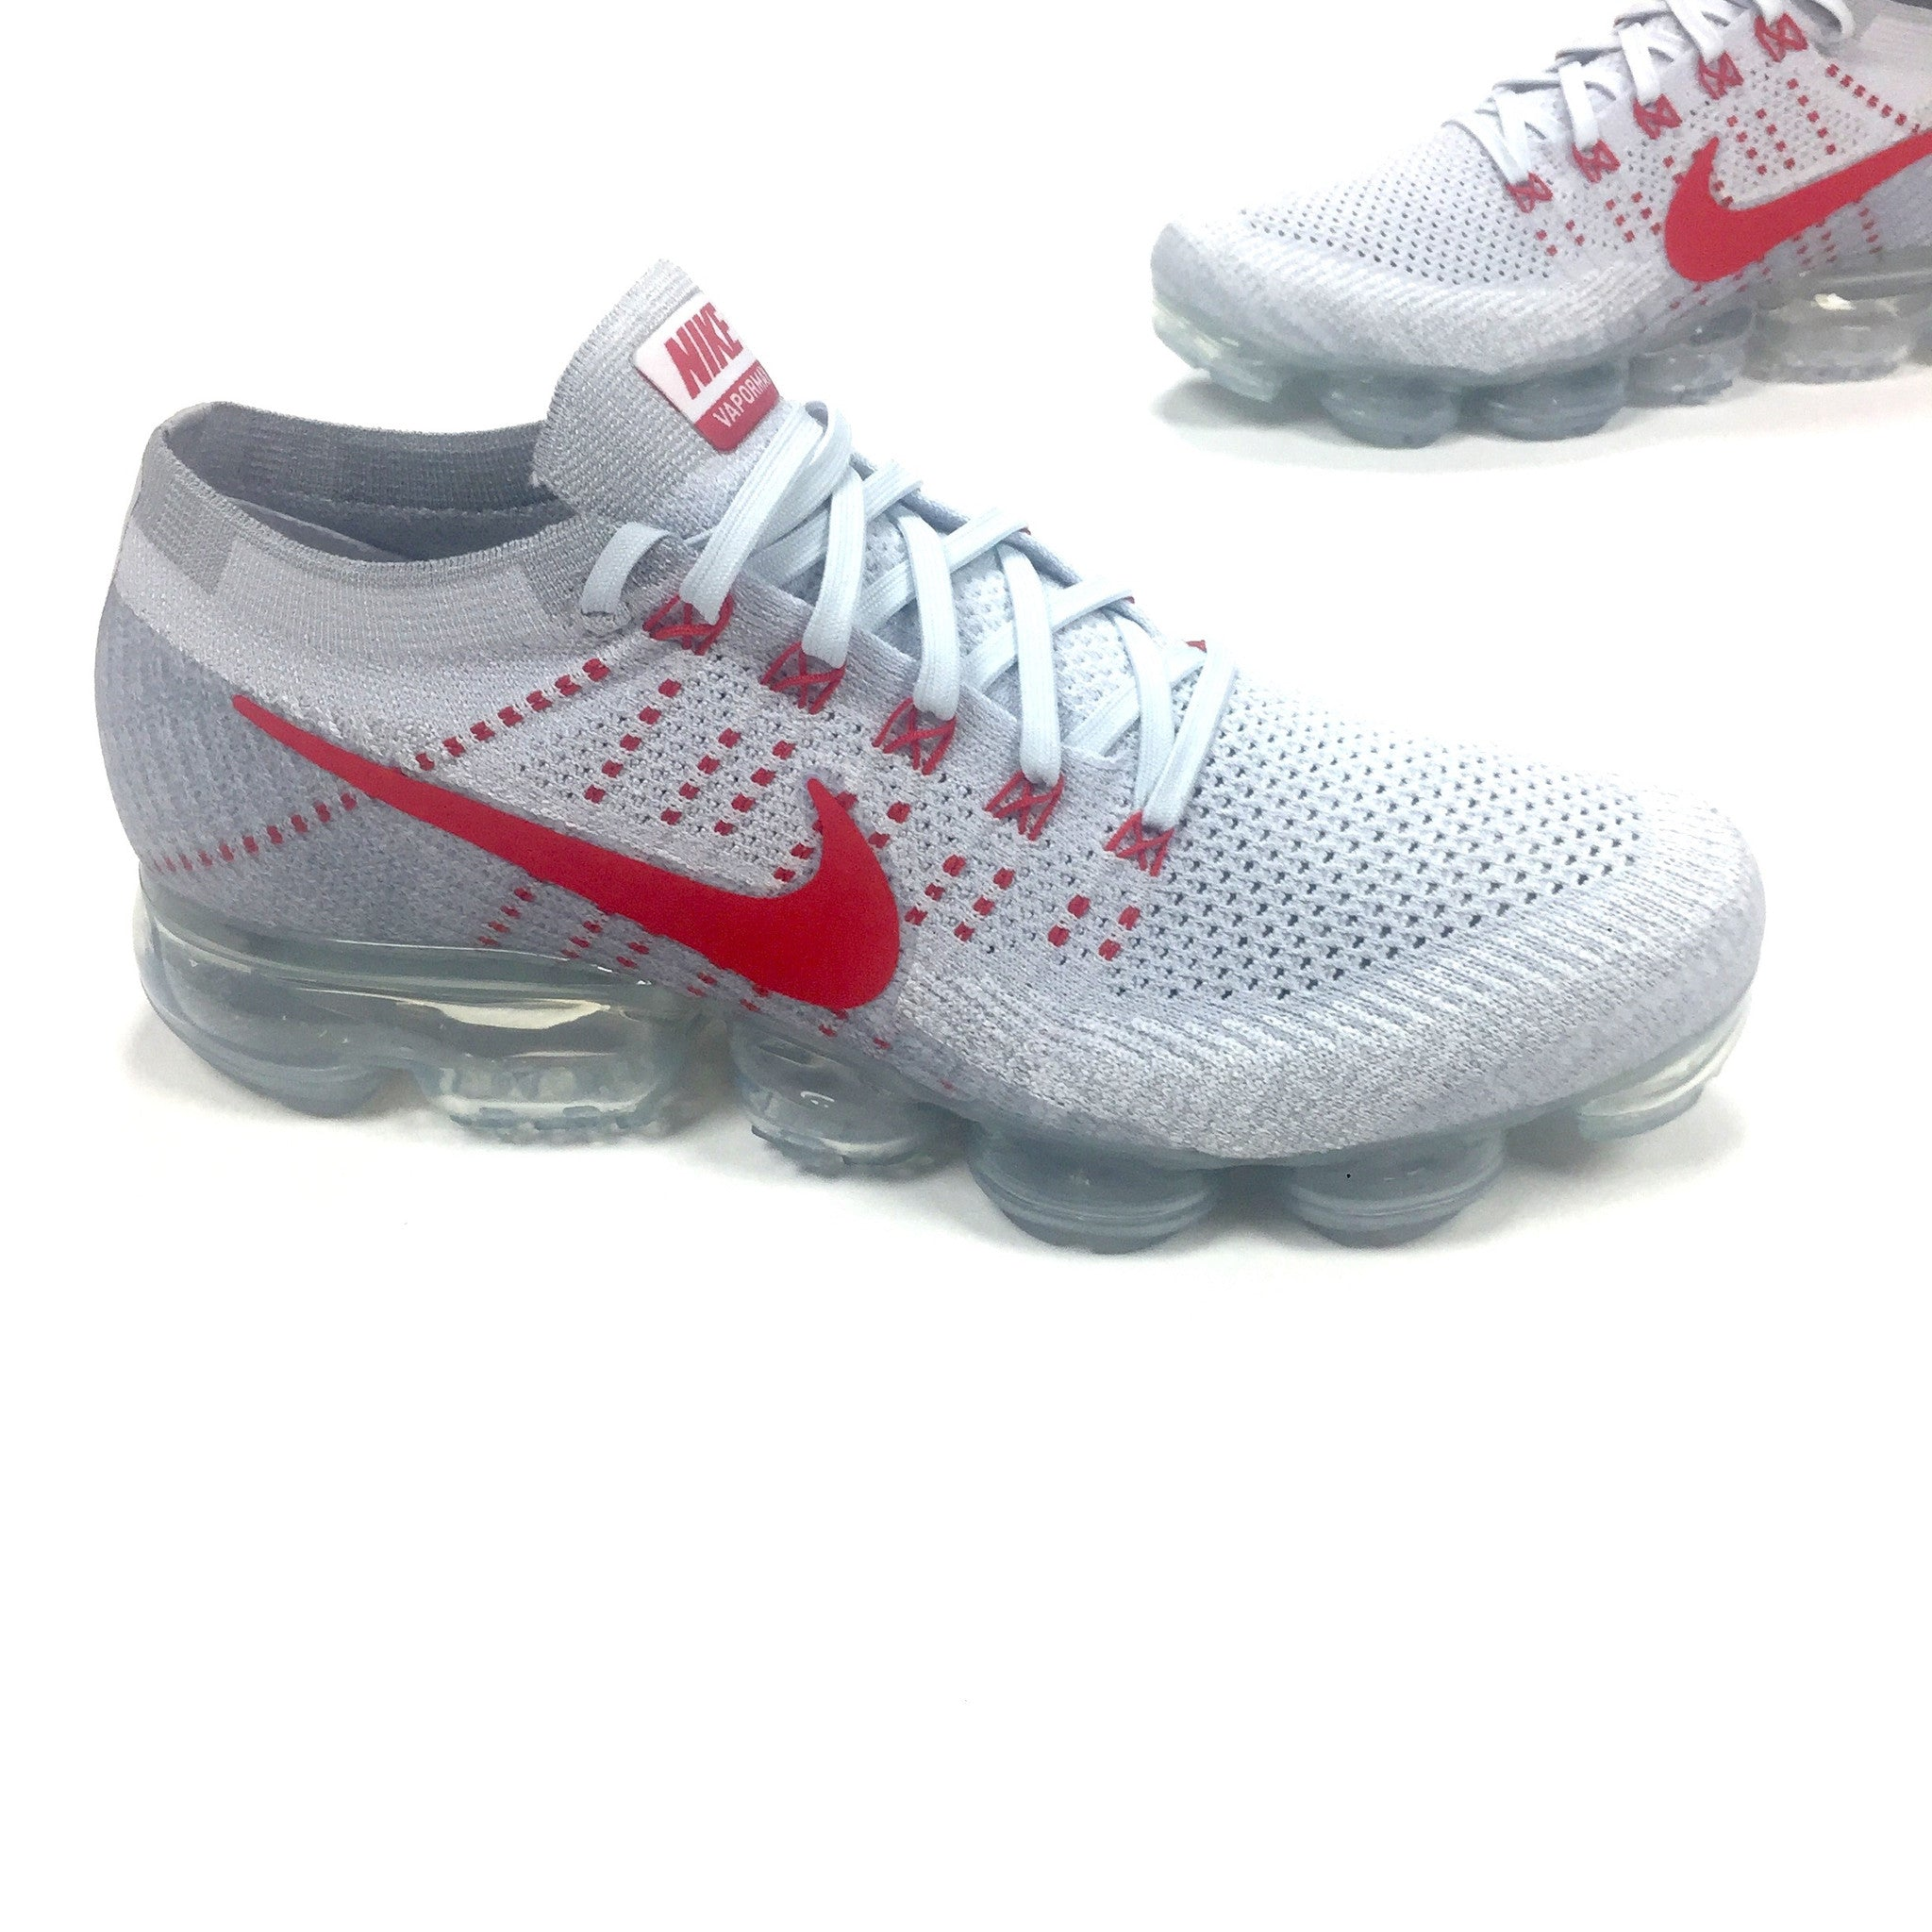 67db7751151 Nike - Men s Air Vapormax Flyknit OG Platinum   White   Red Sneakers ...